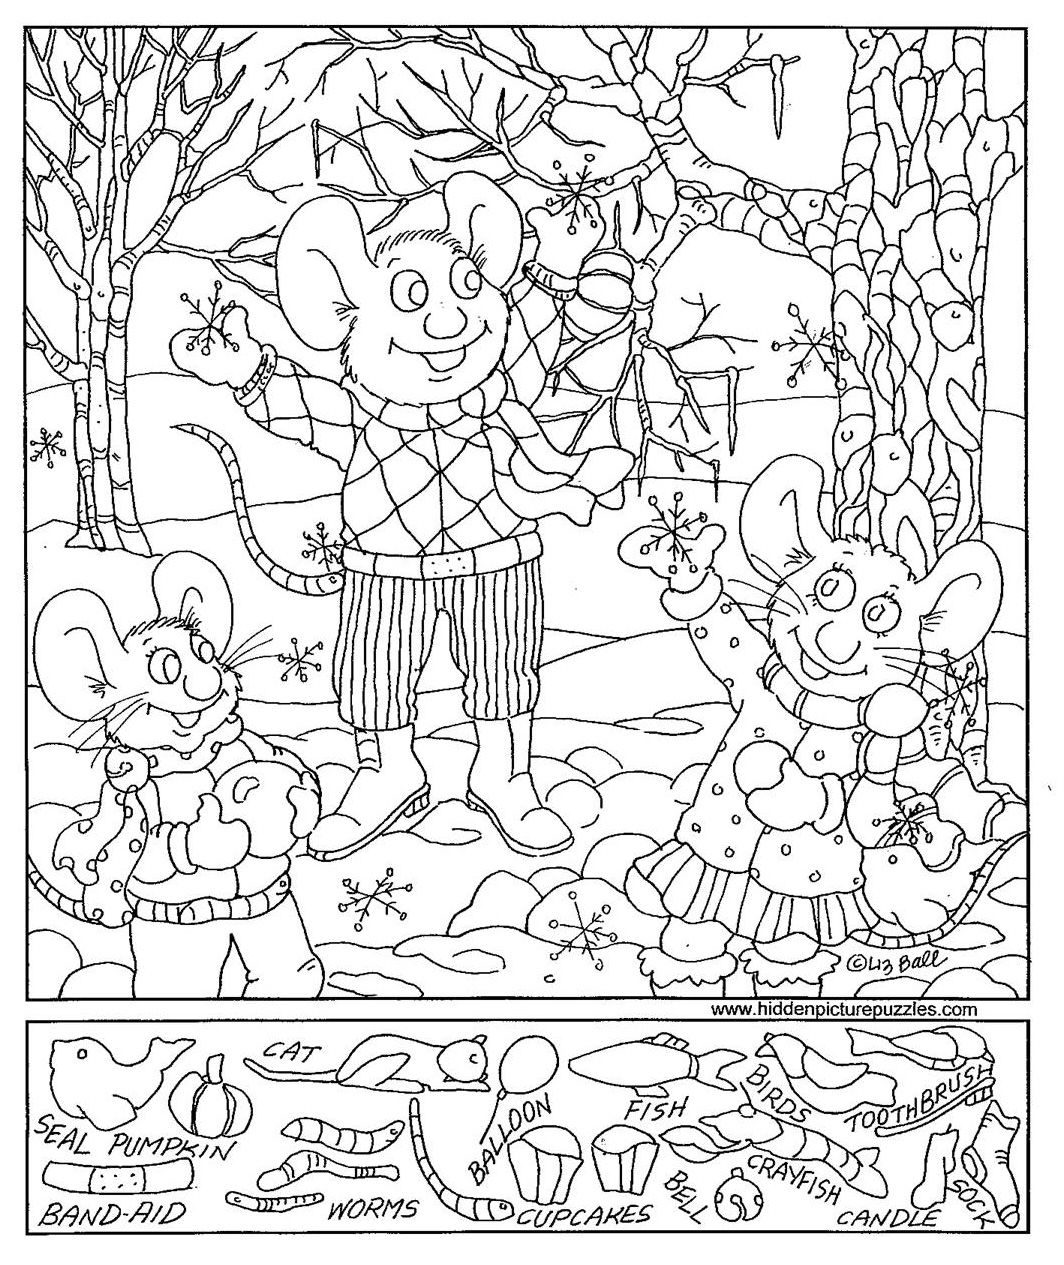 Worksheets Hidden Pictures Worksheets hidden pictures page print your free at allkidsnetwork com